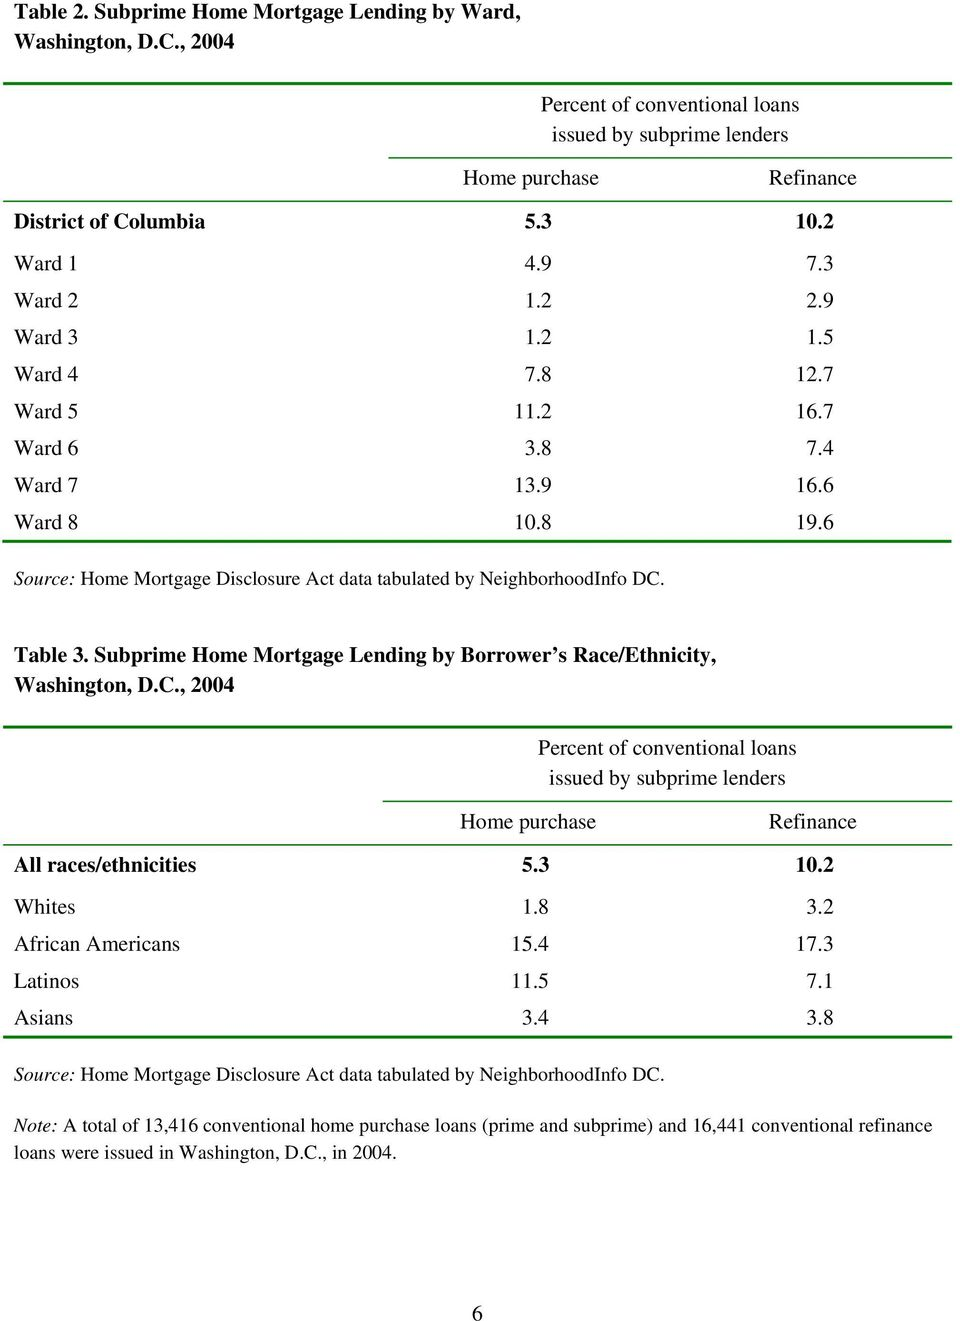 Subprime Home Mortgage Lending by Borrower s Race/Ethnicity, Washington, D.C., 2004 Percent of conventional loans issued by subprime lenders Home purchase Refinance All races/ethnicities 5.3 10.